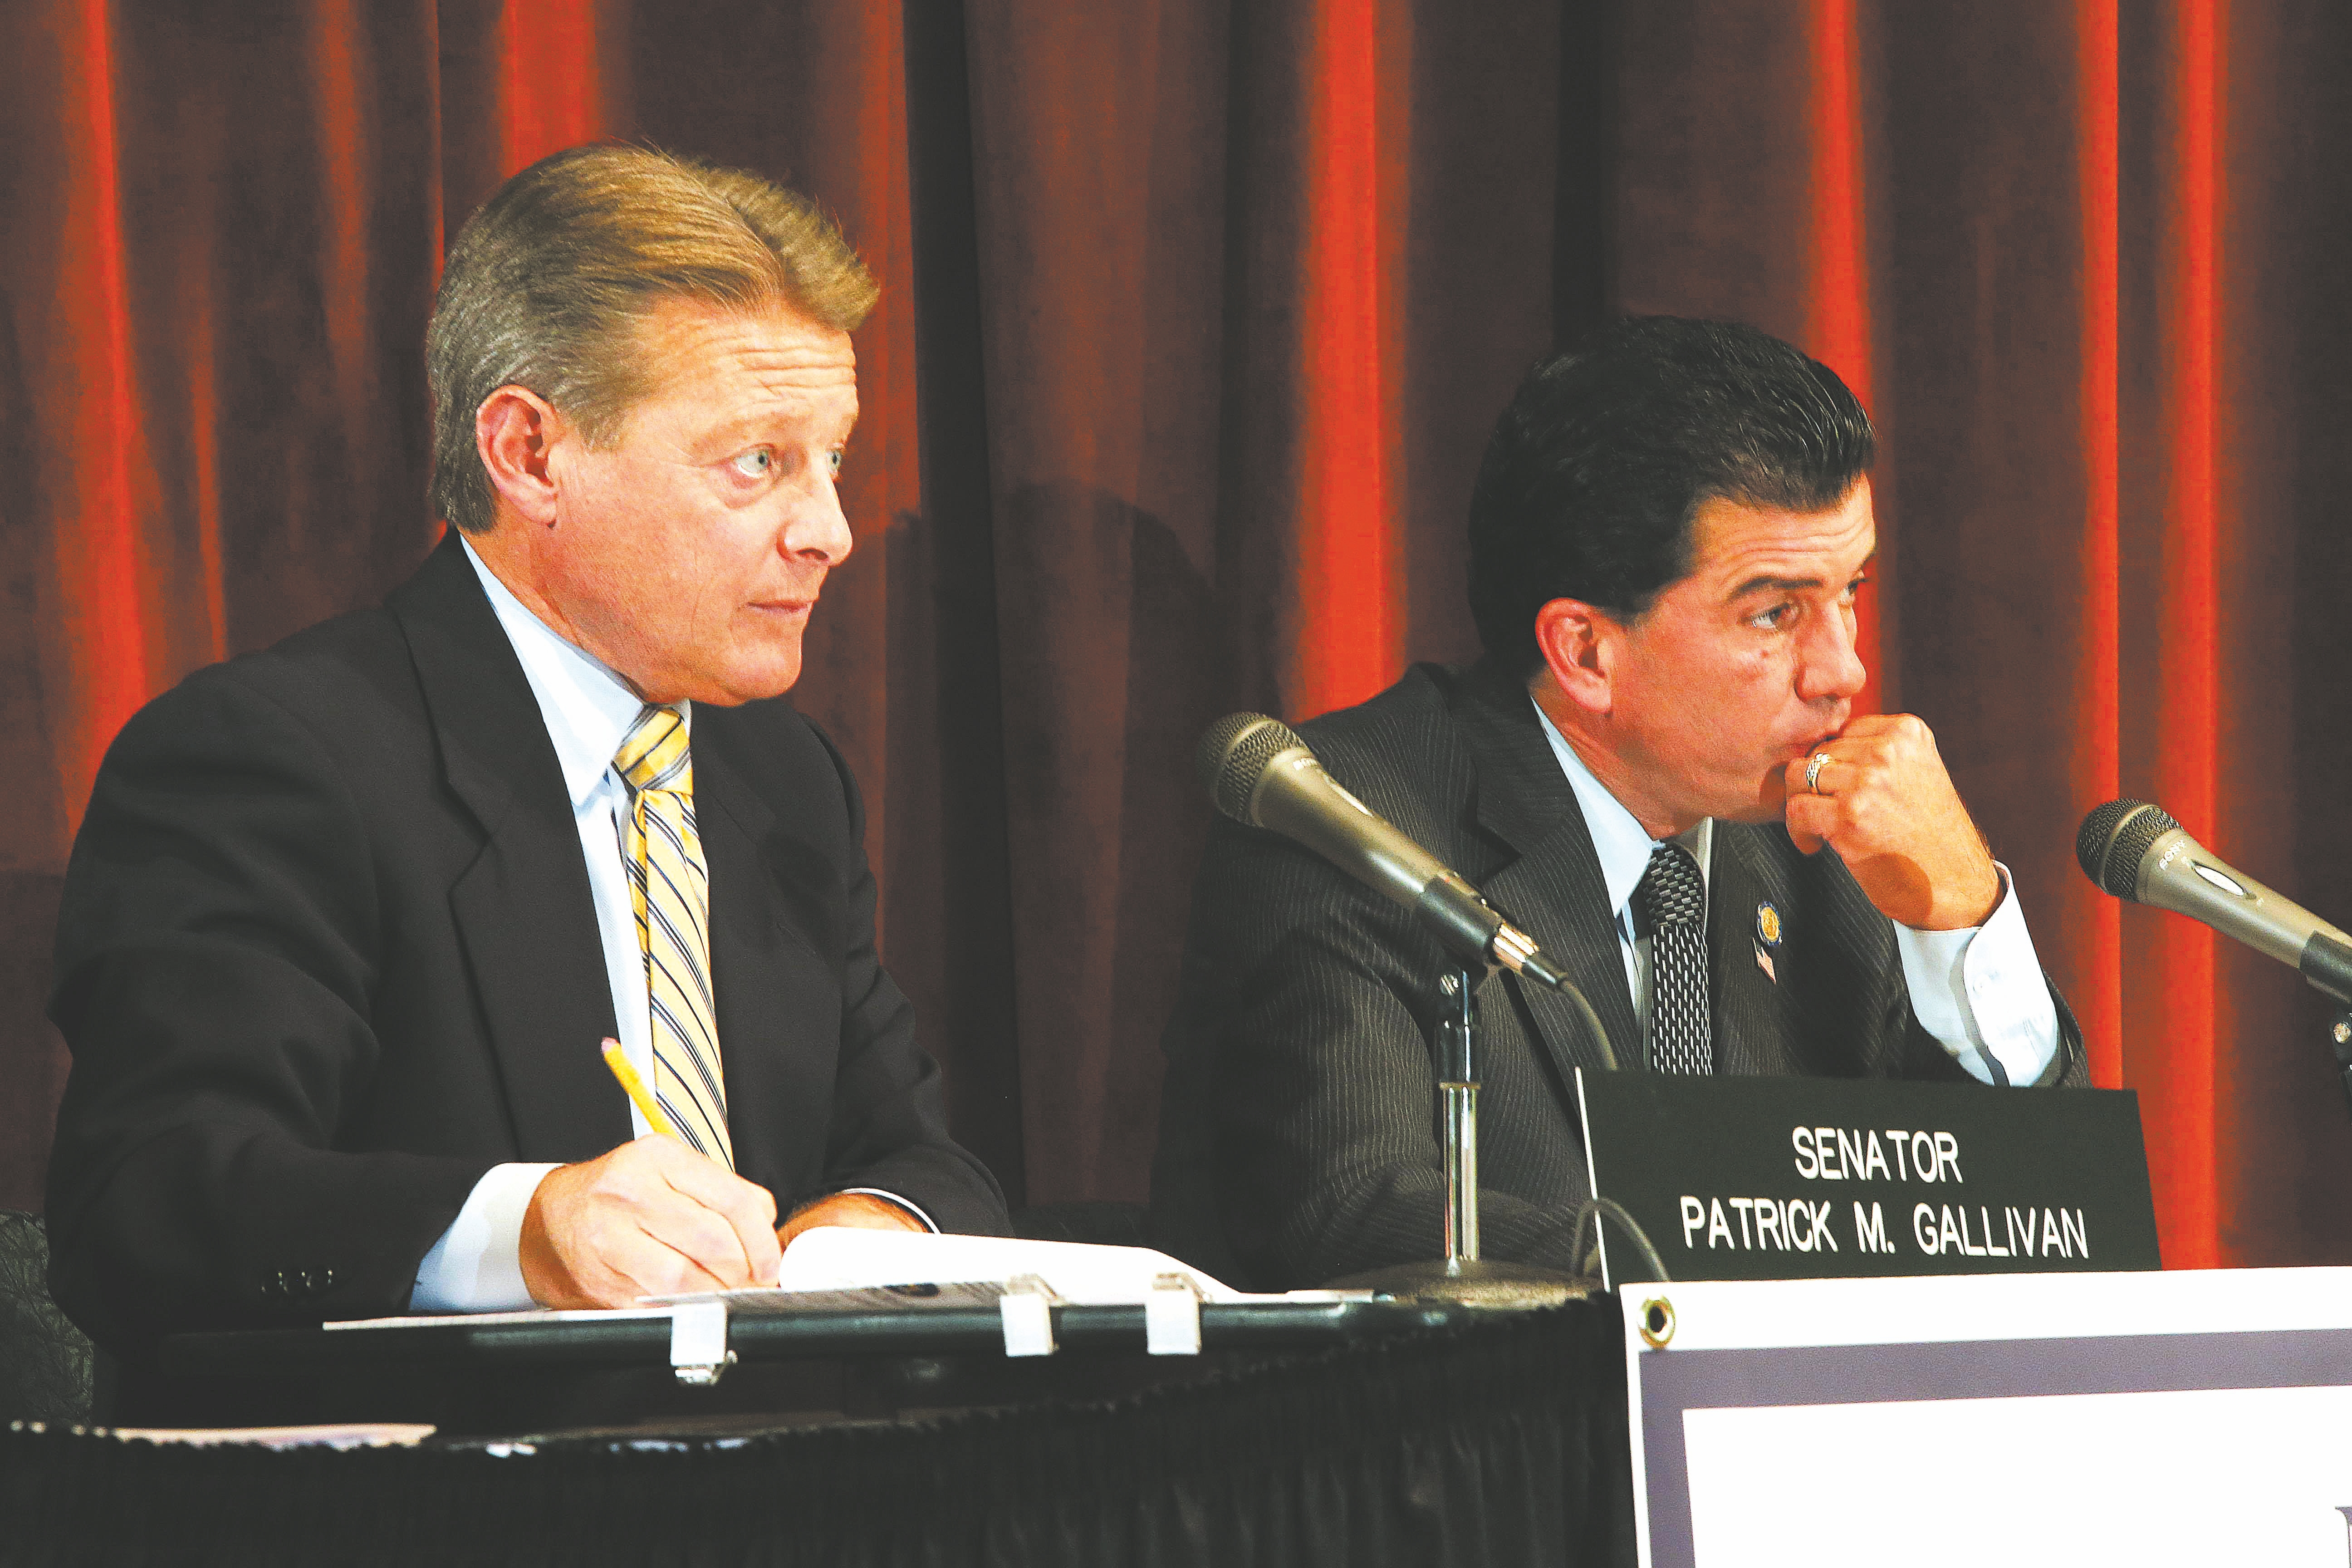 Robert Kirkham/Buffalo News    State Sens. Patrick M. Gallivan, left, and Mark J. Grisanti listen to testimony during a hearing at Central Library on possible reforms to IDA system for economic development.